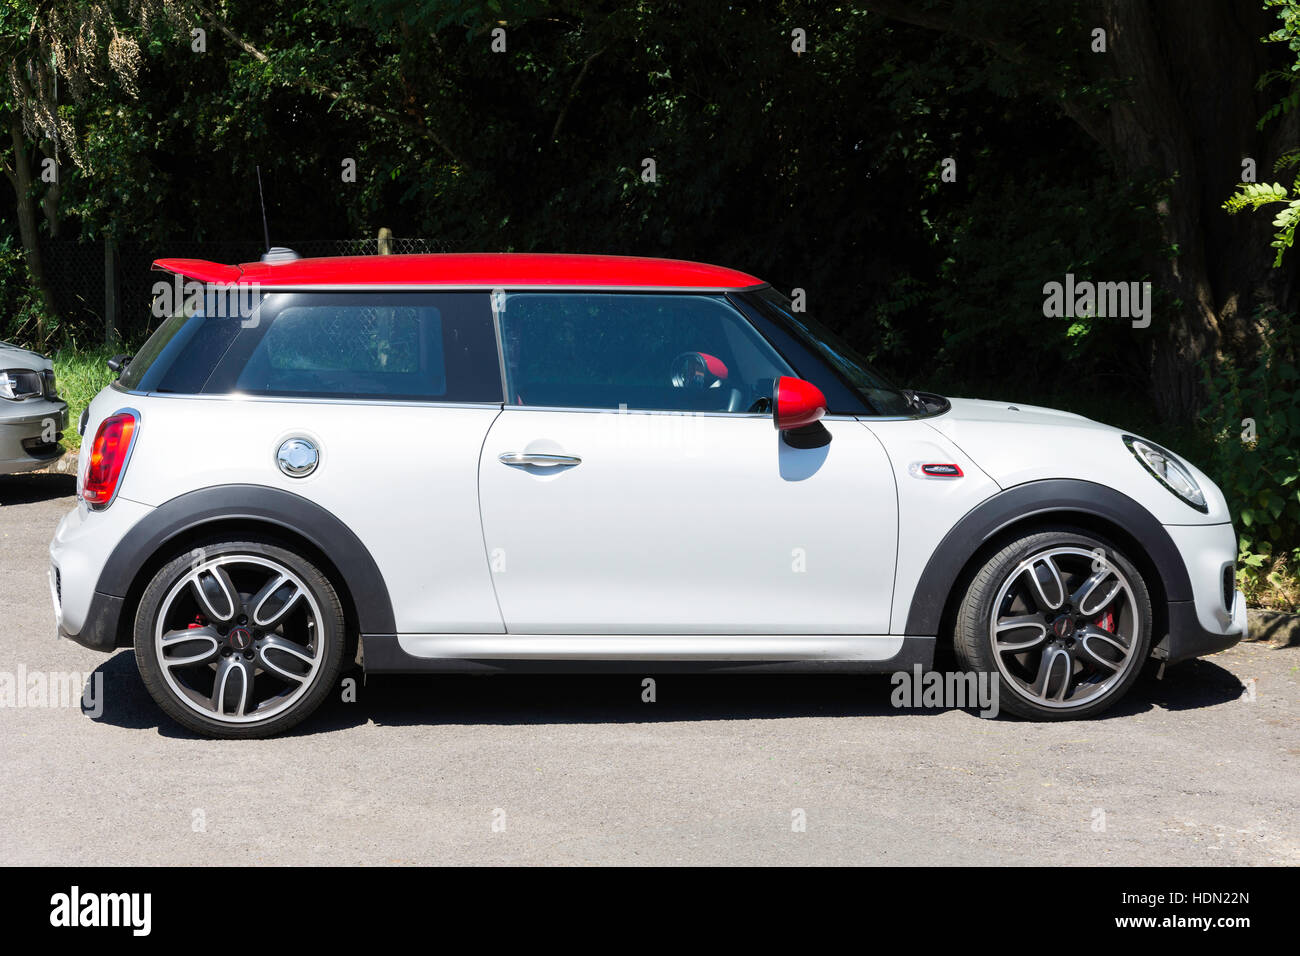 Red and white Mini (BMW)Cooper in parking area, Chobham, Surrey, England, United Kingdom Stock Photo